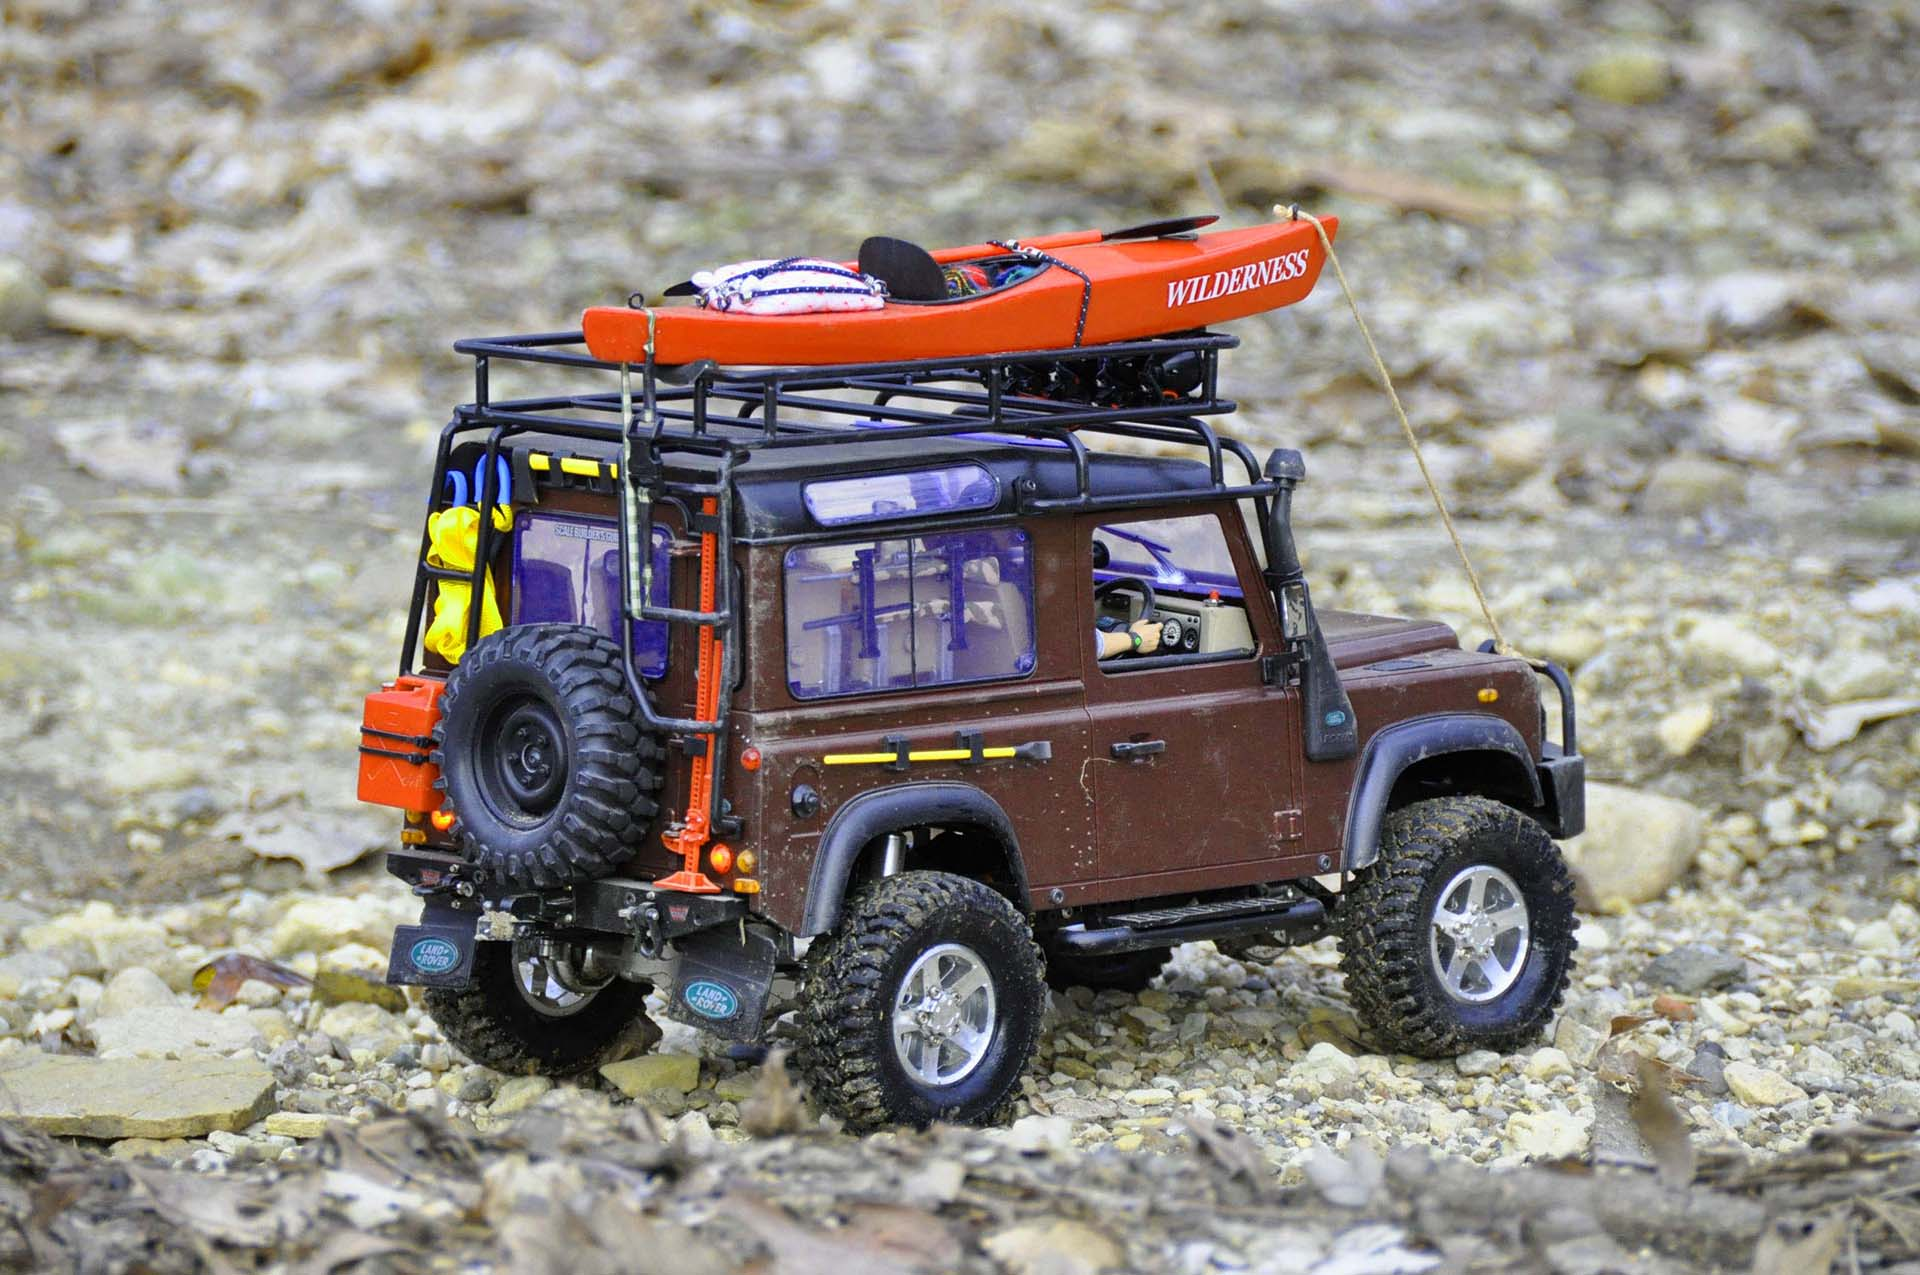 rc crawler trucks with 467579 How Get Hobby Rc Driving Rock Crawlers on Rock Crawler RC Truck Decal Bone Collector p 201 together with Lifted Toyota Pickup Crawler besides Vnrc 102 as well Pro Lines Small Scale 125 Ambush 4x4 Truck furthermore 57c08327ccfc600088e327b2.